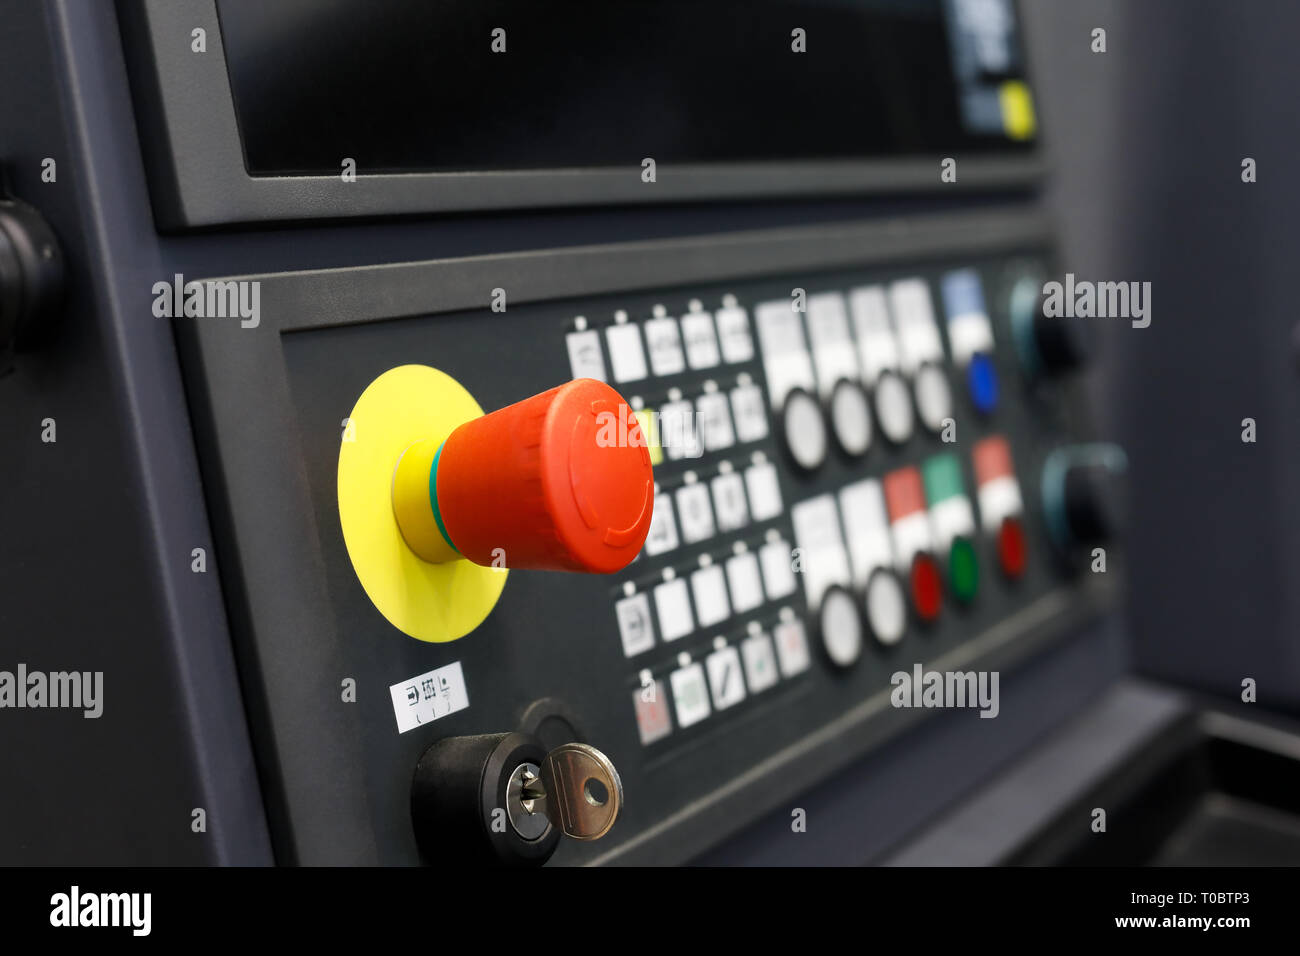 Control panel of metalworking CNC-operated machine. Selective focus. - Stock Image